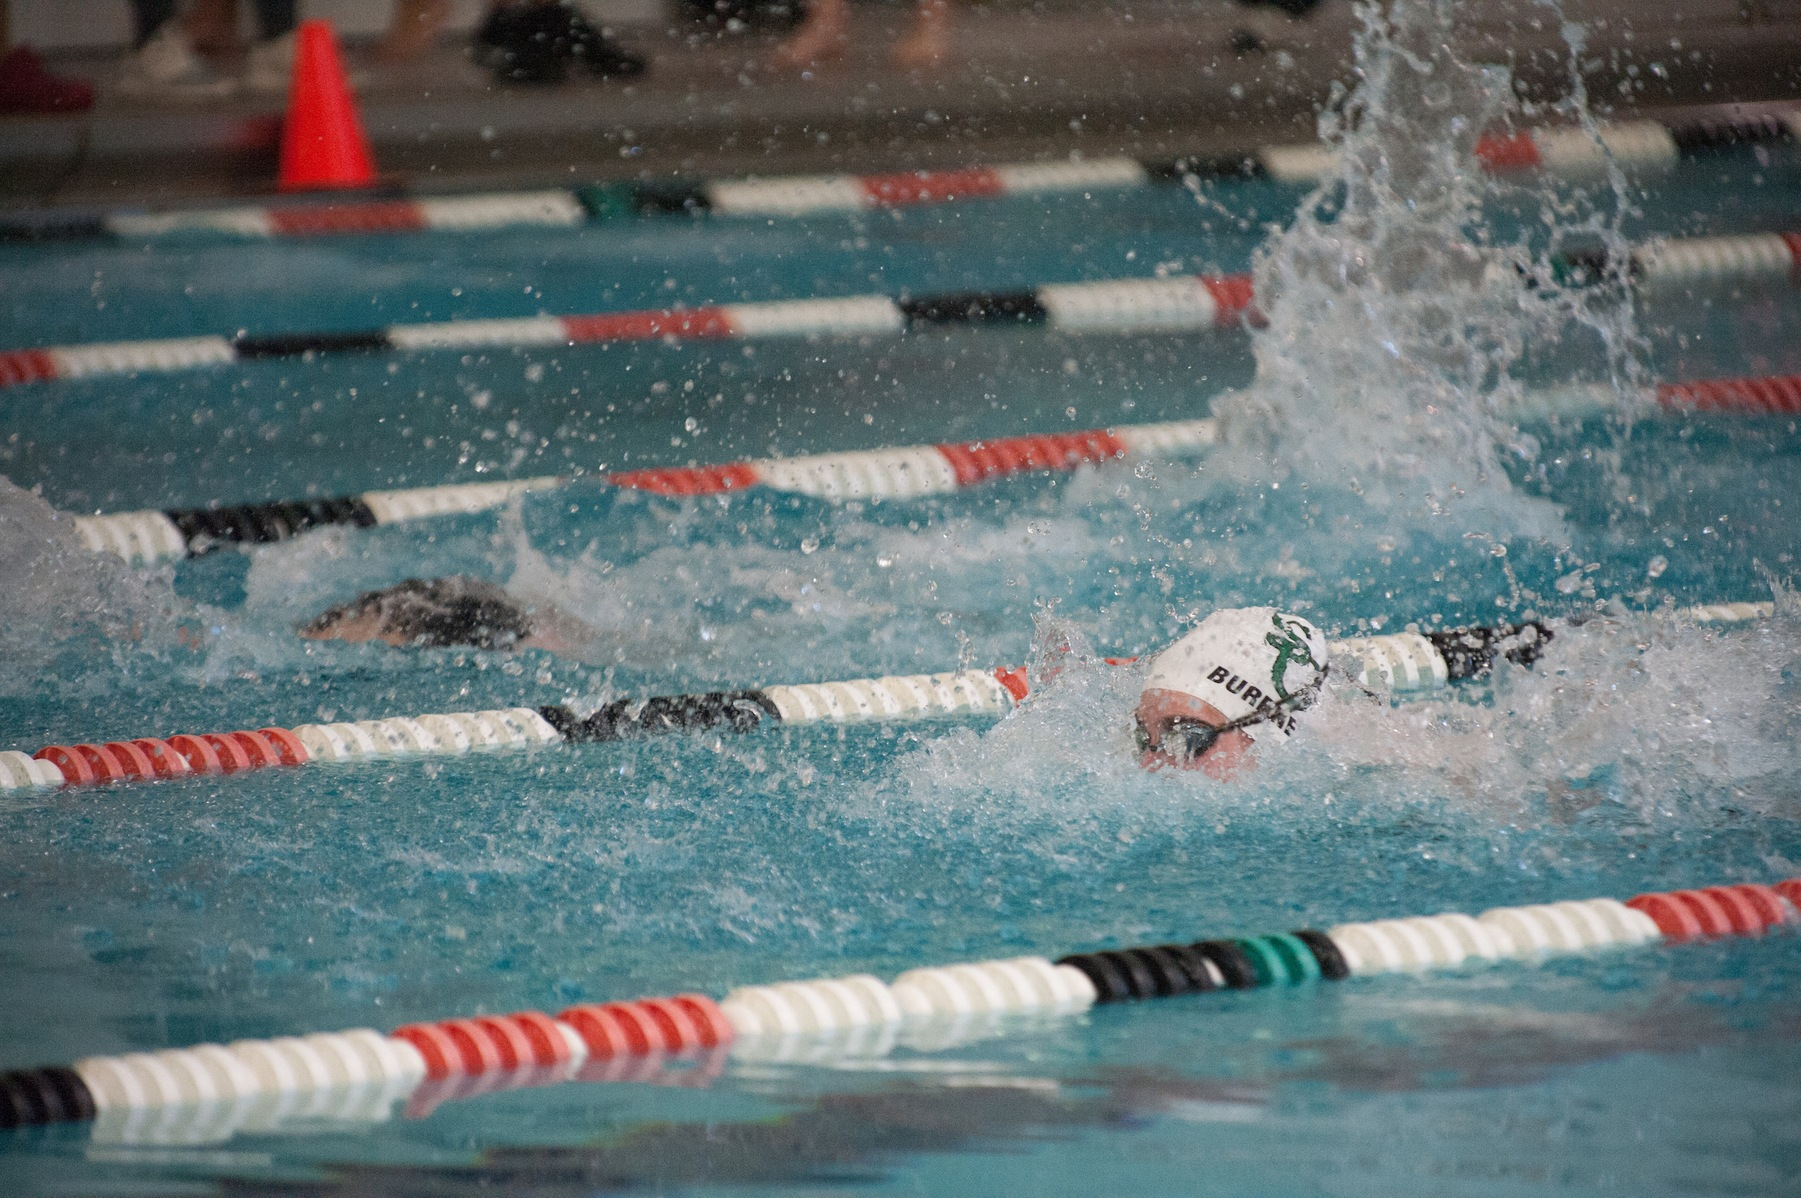 Burnett Wins Two Events in Dual Meet Loss to Messiah